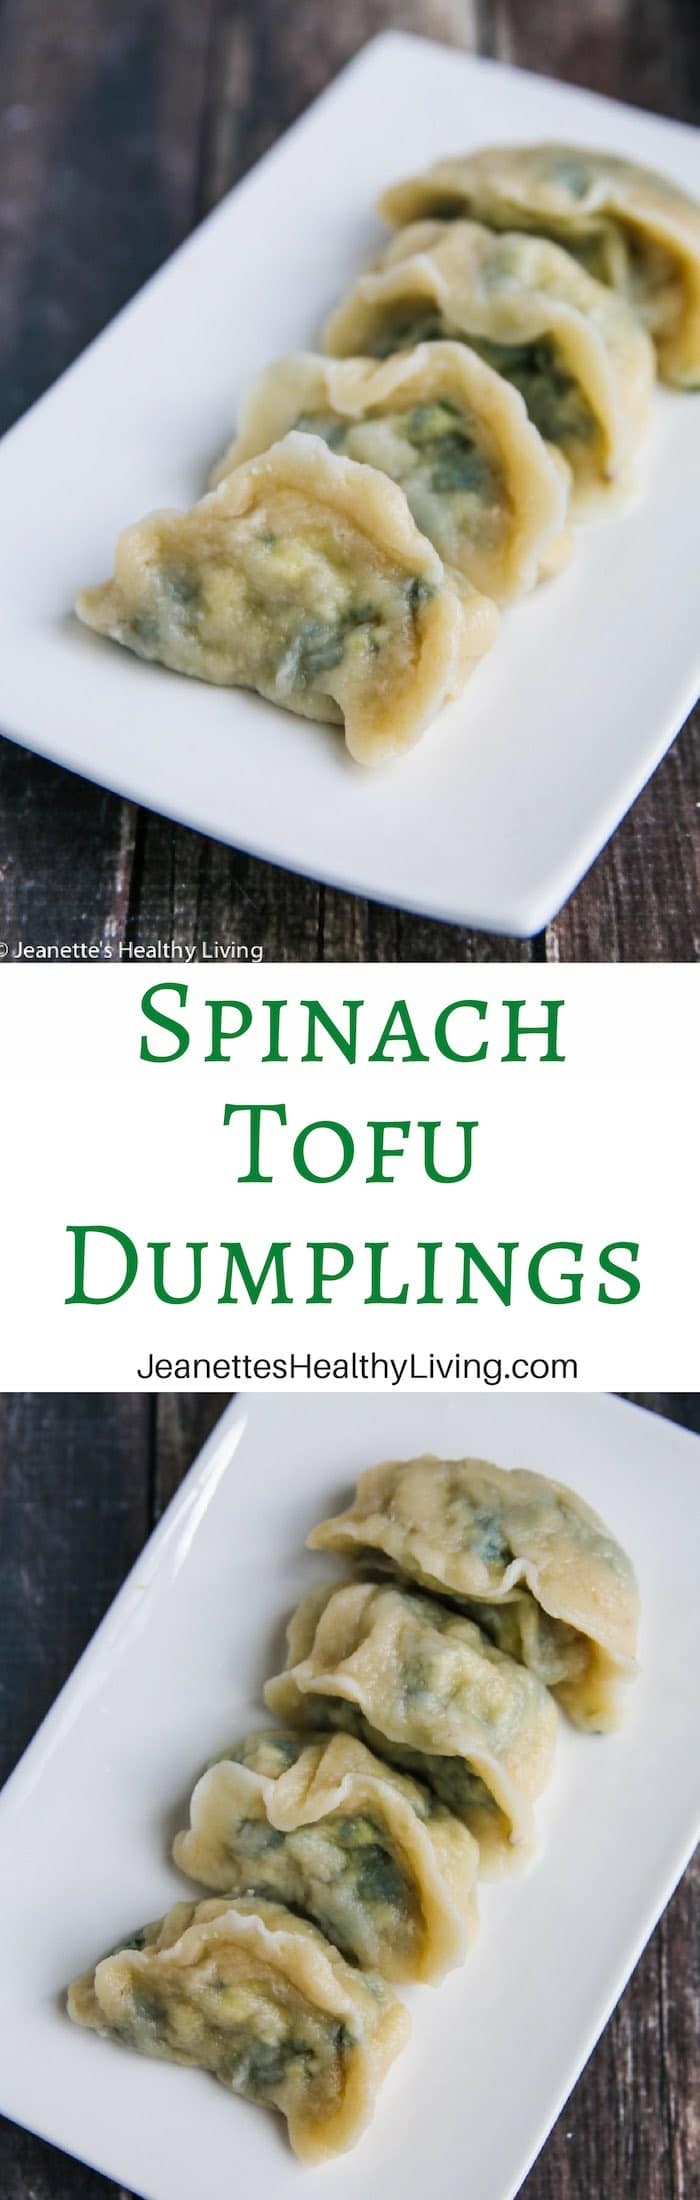 Spinach Tofu Dumplings - light vegetarian dumplings, packed with protein and iron